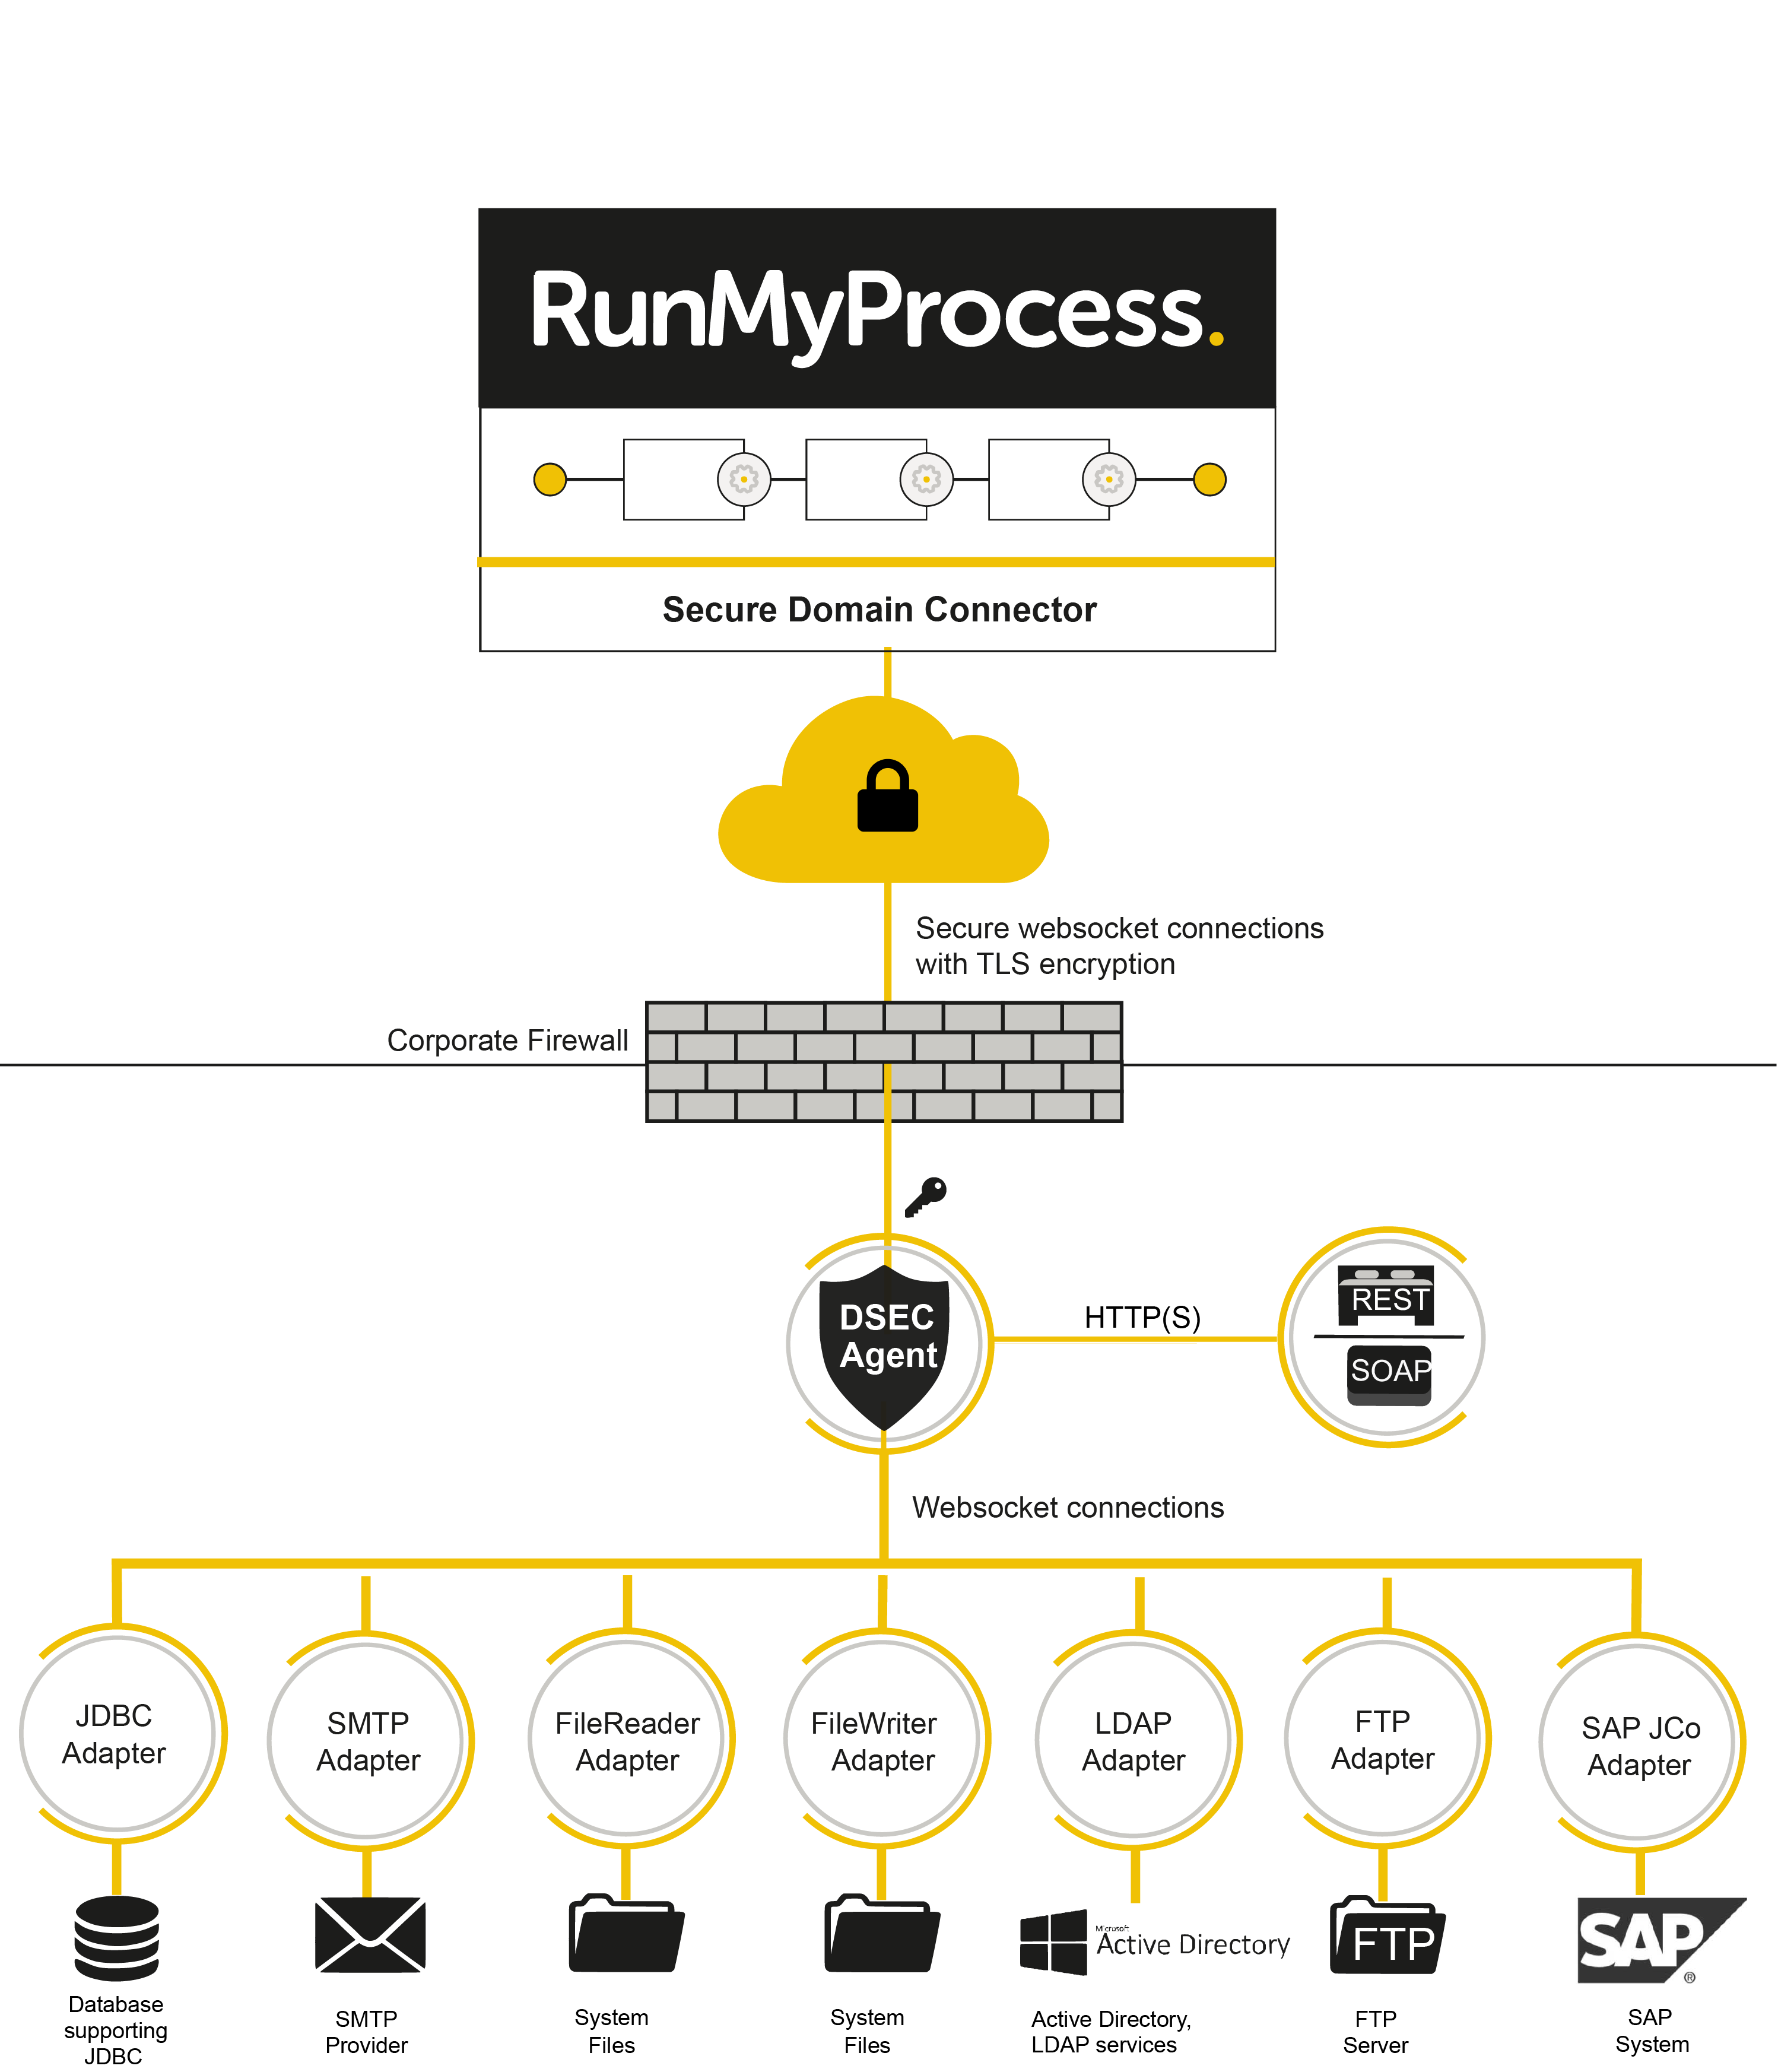 RunMyProcess - Overview of the RunMyProcess Secure Enterprise Connector tunnel